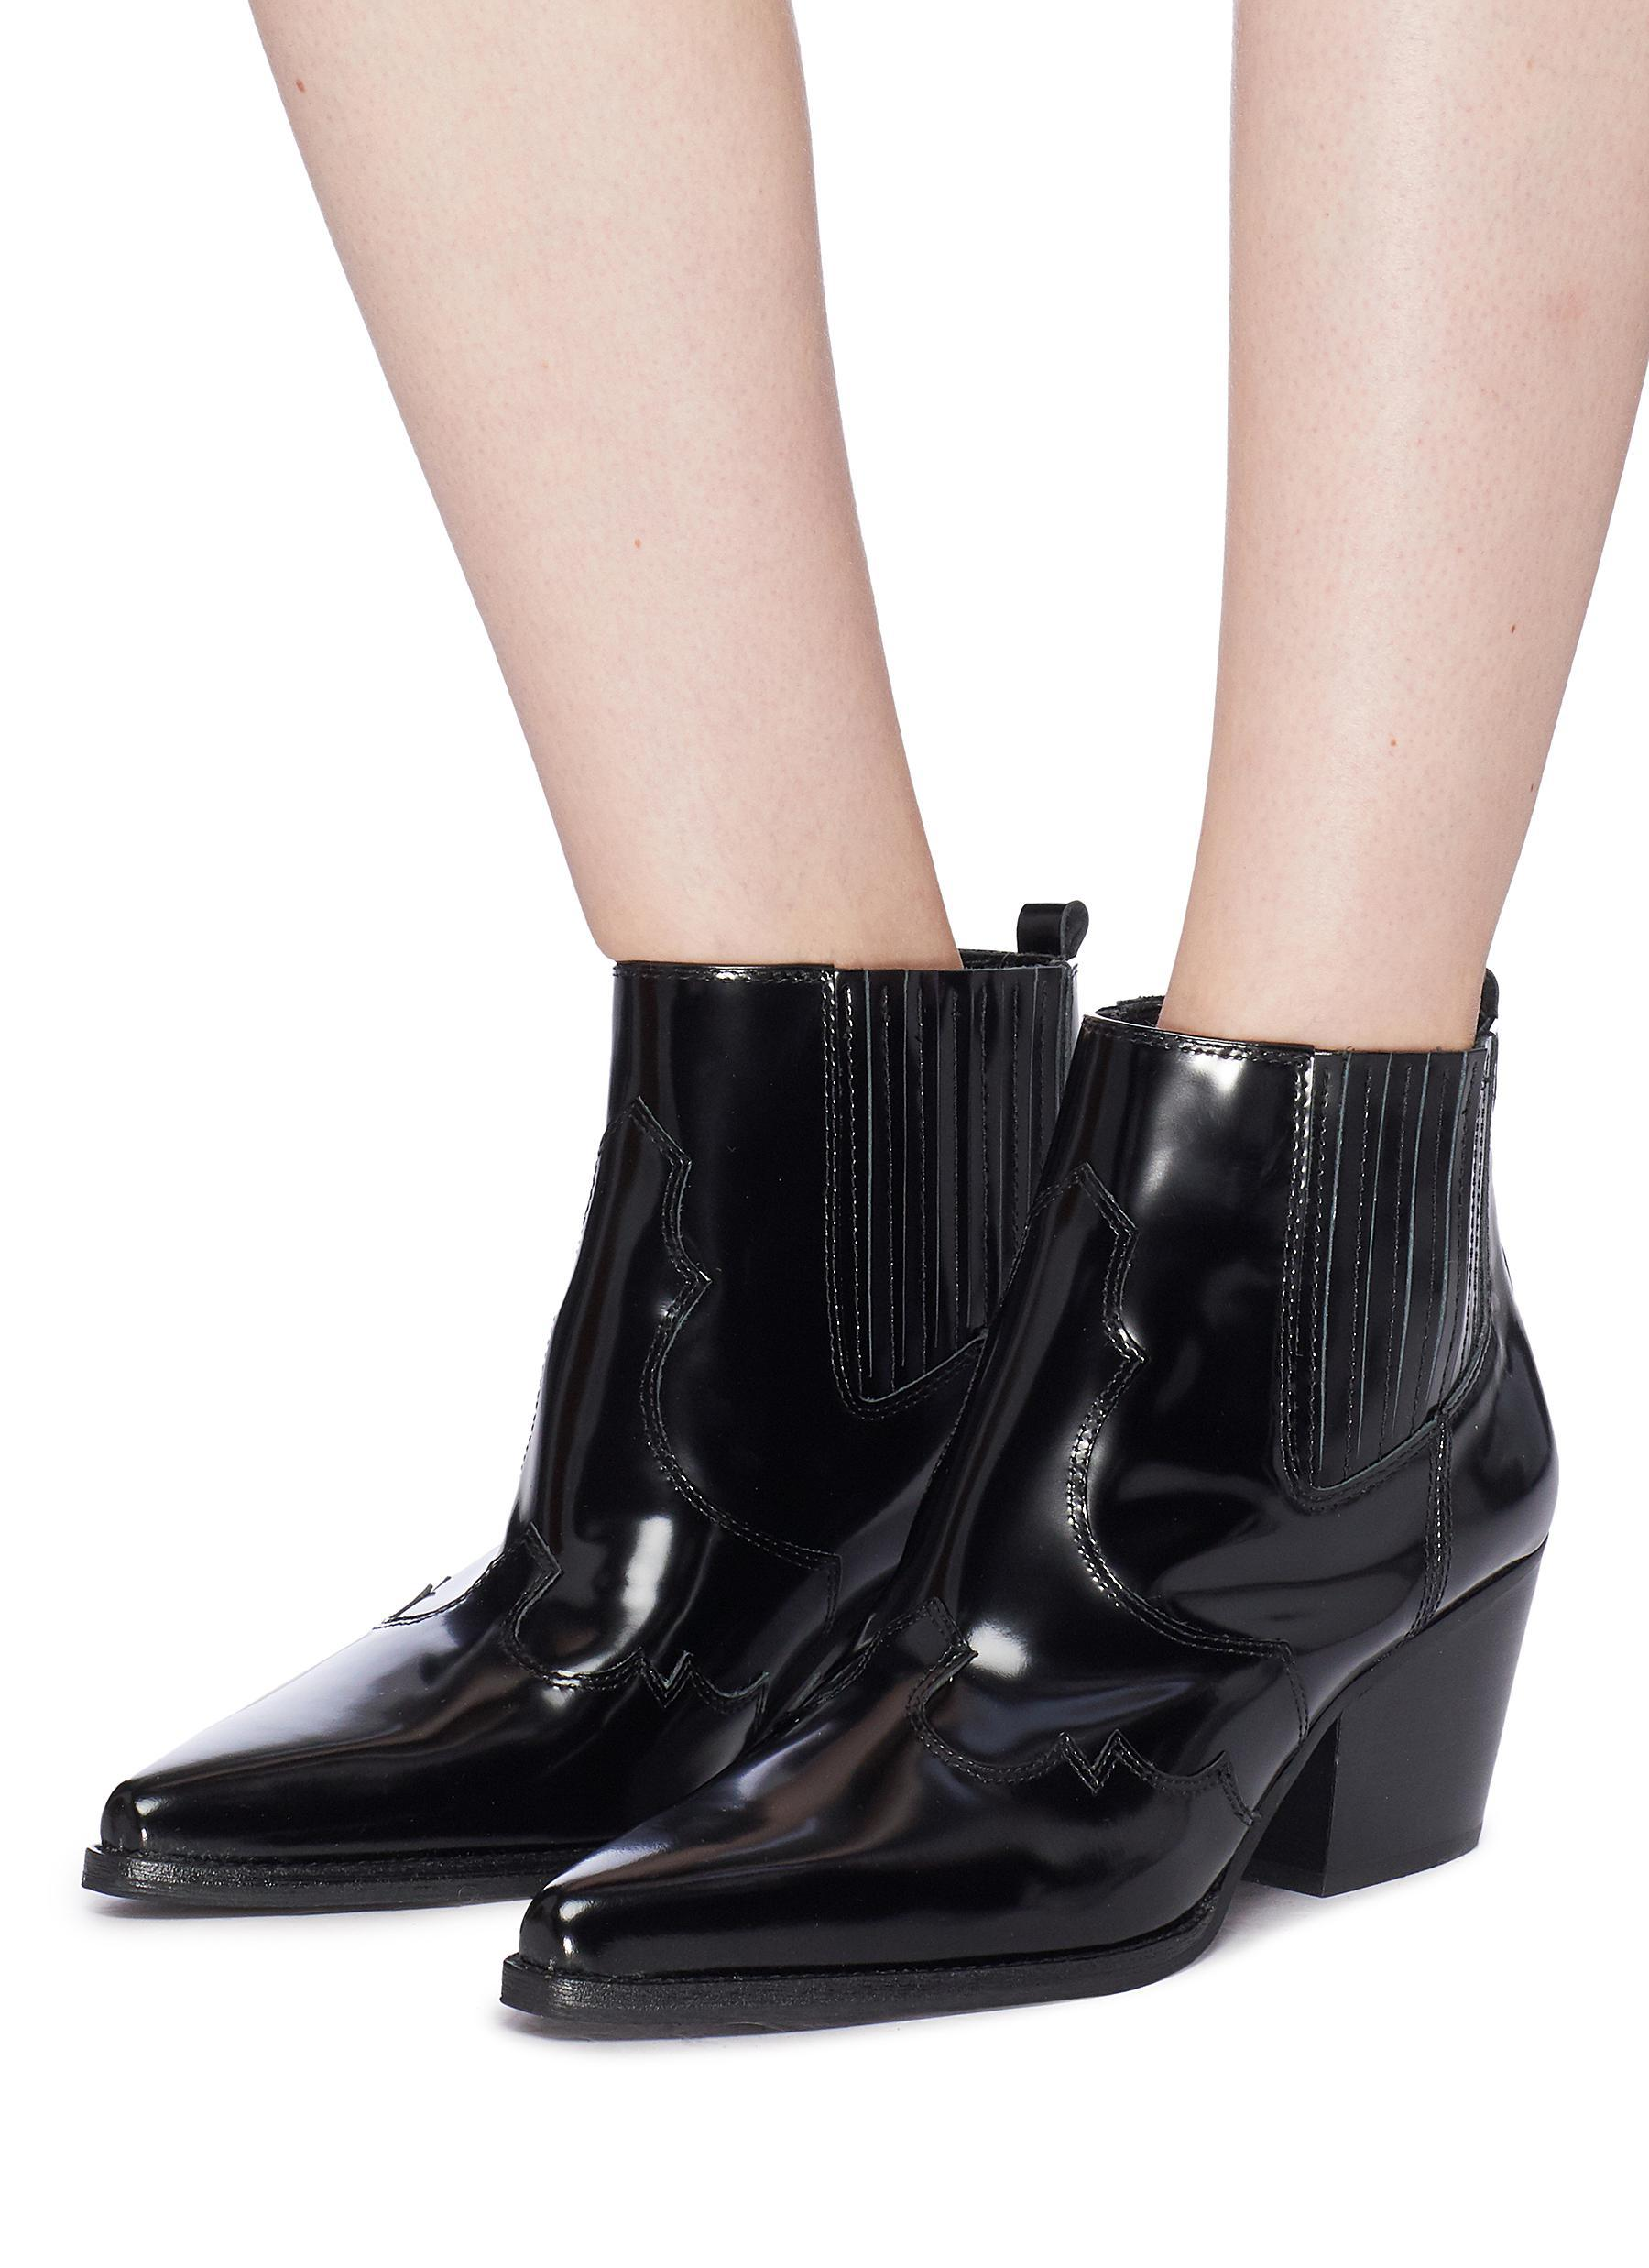 5d76d6c47277 Lyst - Sam Edelman  winona  Patent Leather Panelled Ankle Boots in Black